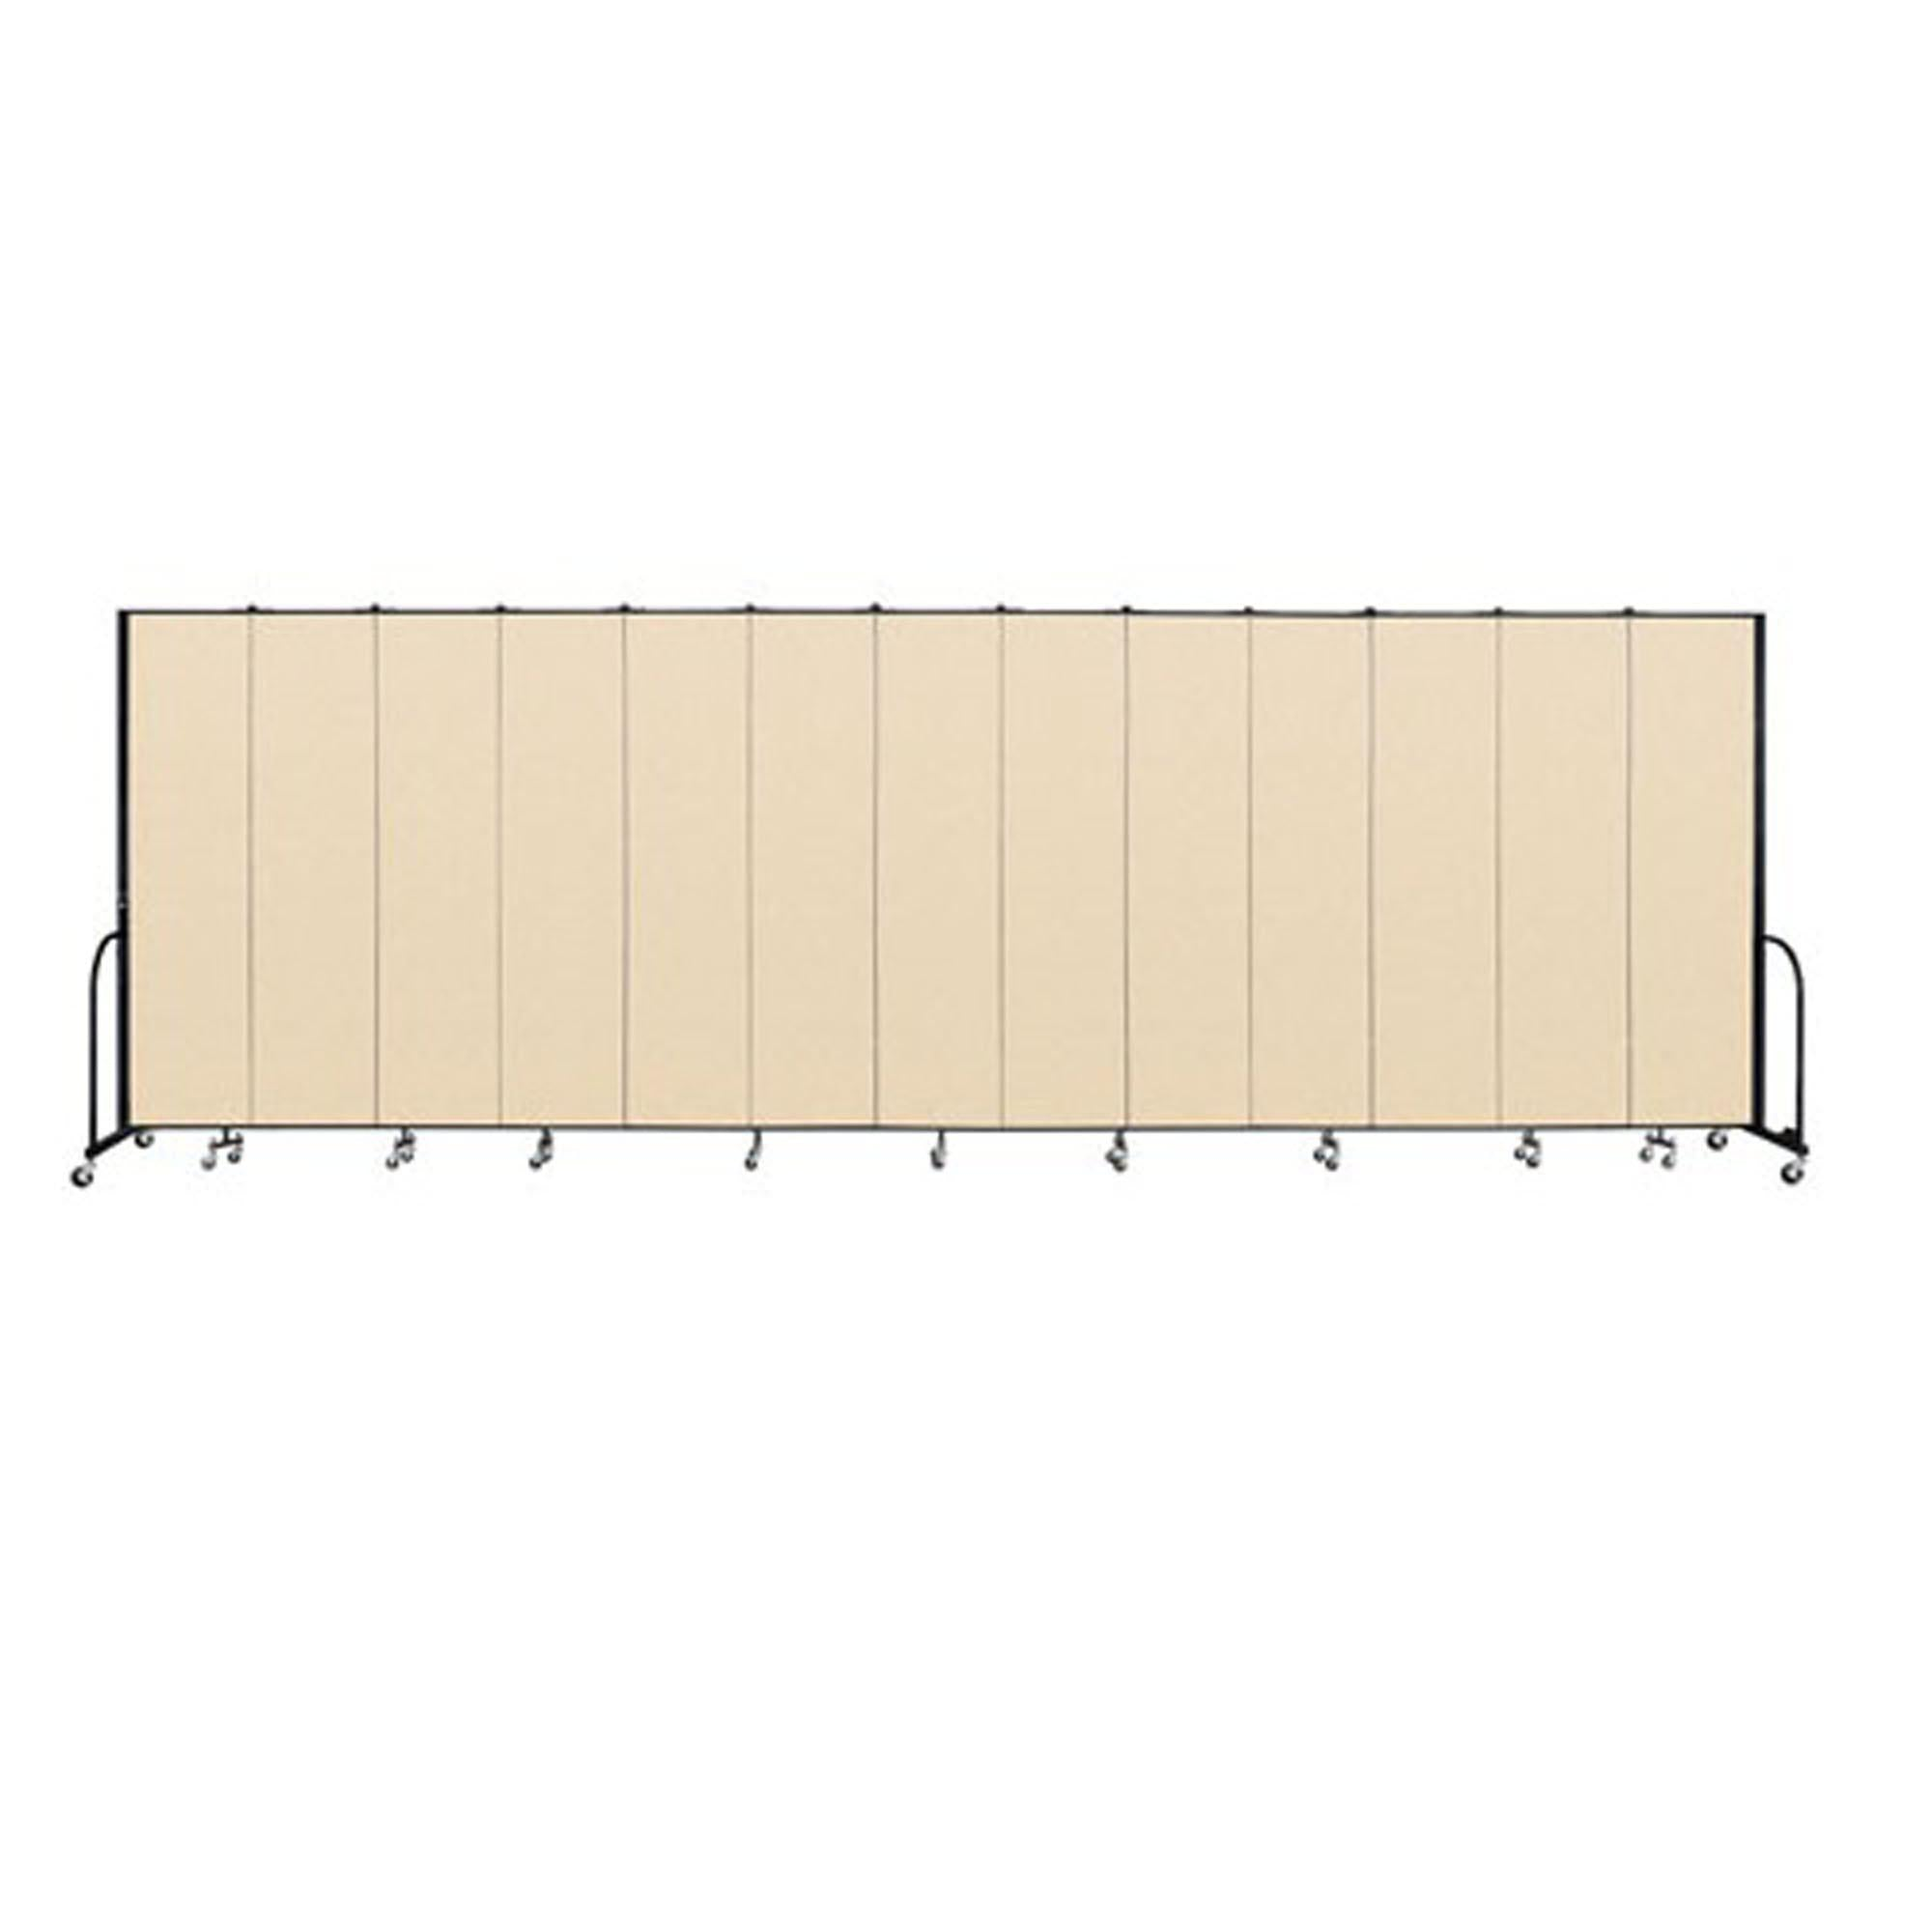 "Screenflex FREEstanding Vinyl Portable Partition - 8'H x 24' 1""L - 13 Panels"